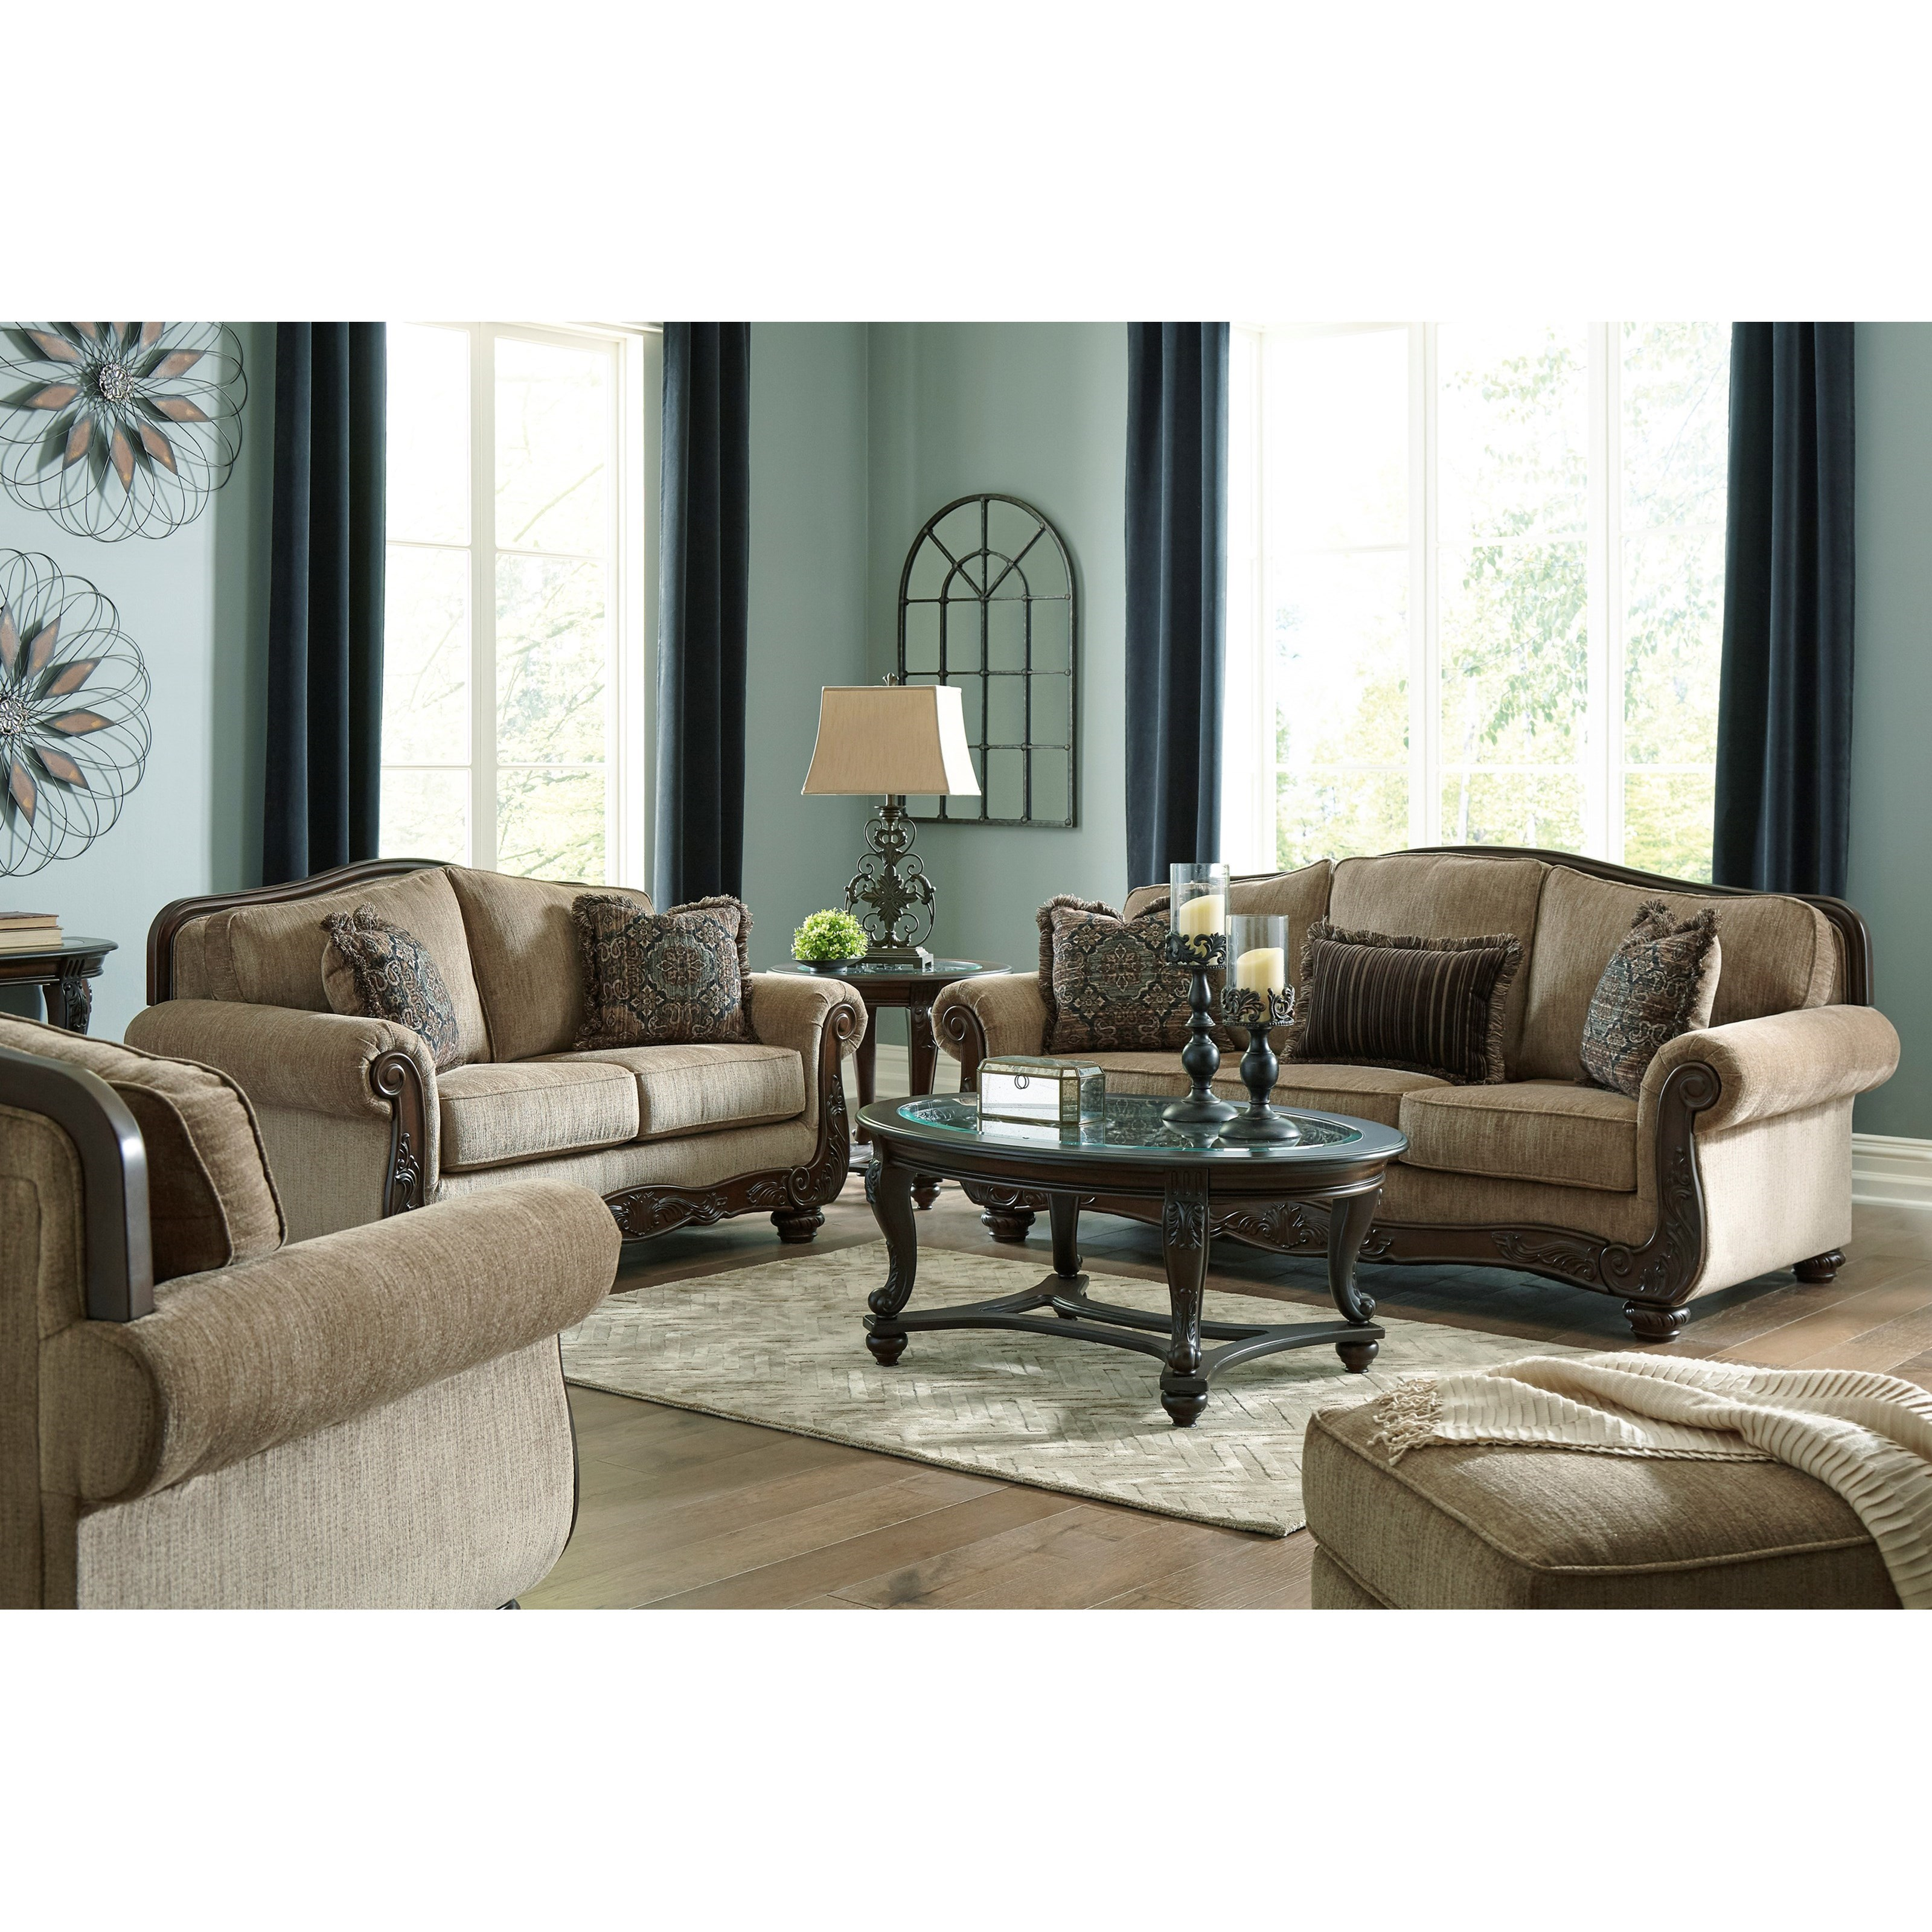 Briaroaks Living Room Group by Benchcraft at Zak's Warehouse Clearance Center